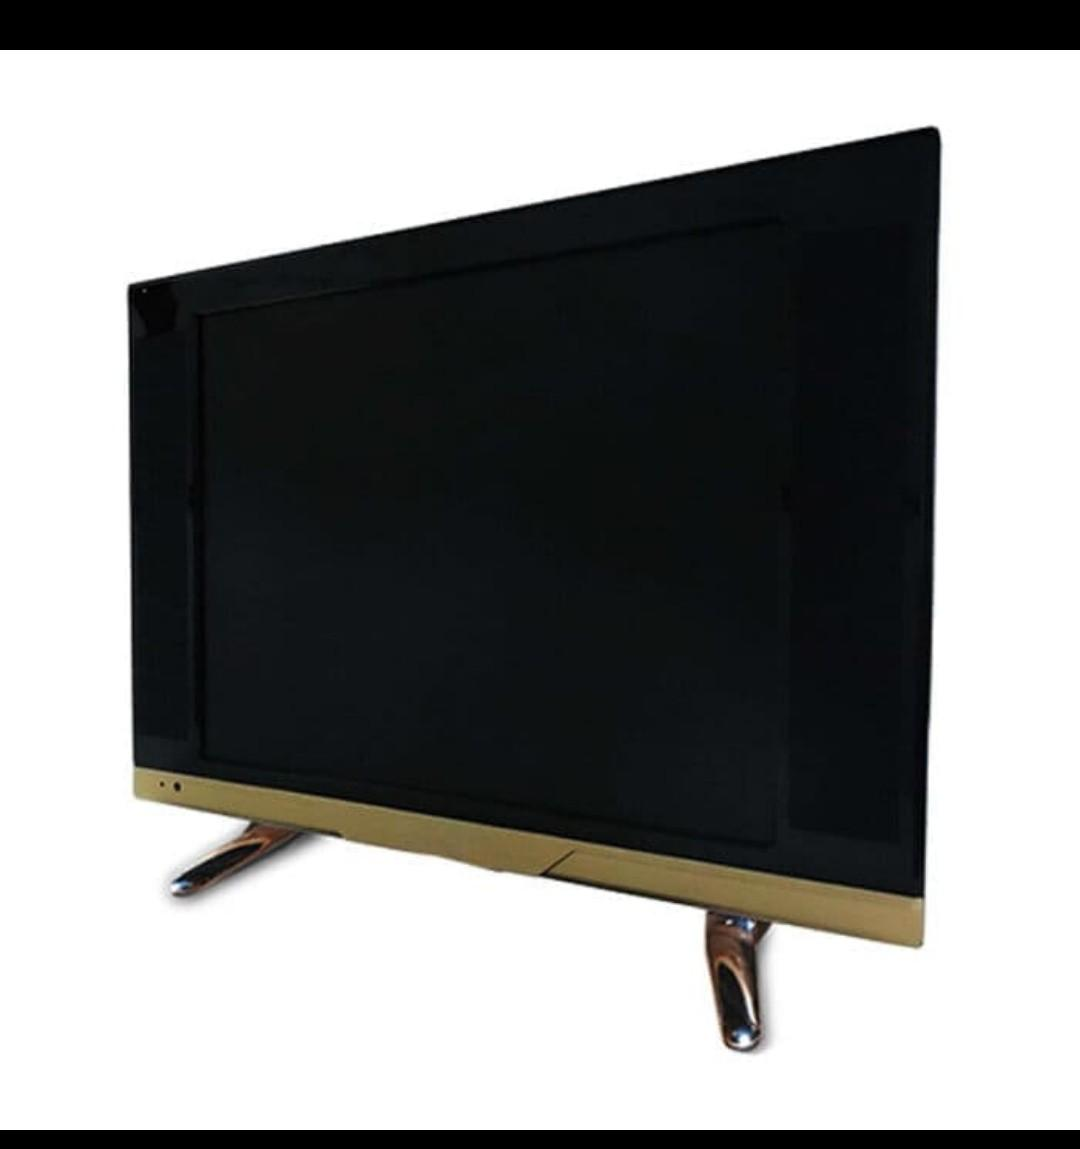 LED TV NIKO 21 INCH